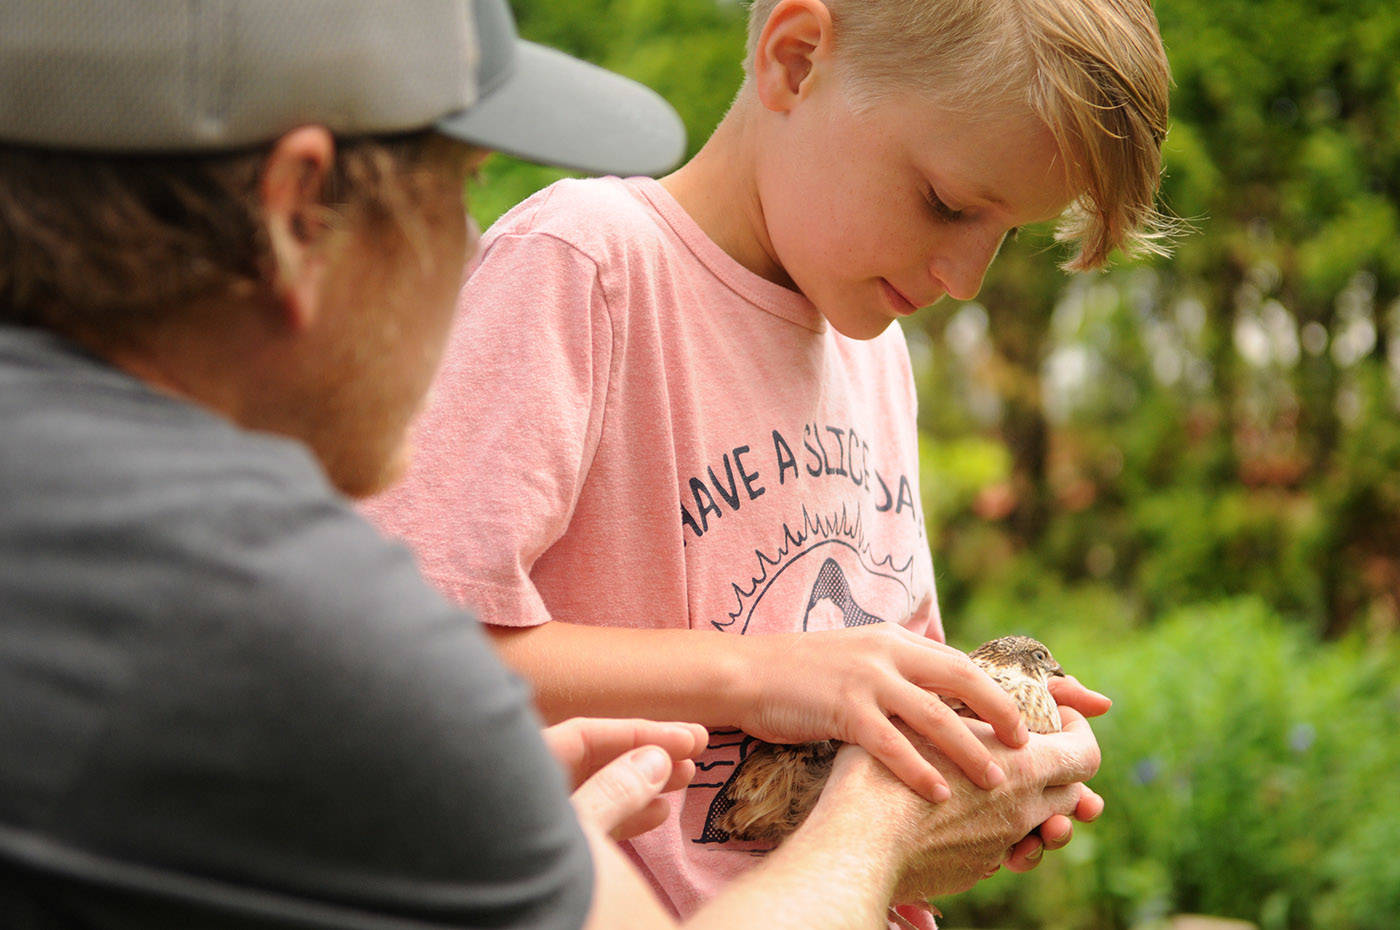 Nick Meredith hands a quail to his 10-year-old son Lukas in their backyard in Chilliwack on Friday, May 28, 2021. The family was ordered to move their backyard quail or face a fine. (Jenna Hauck/ Chilliwack Progress)